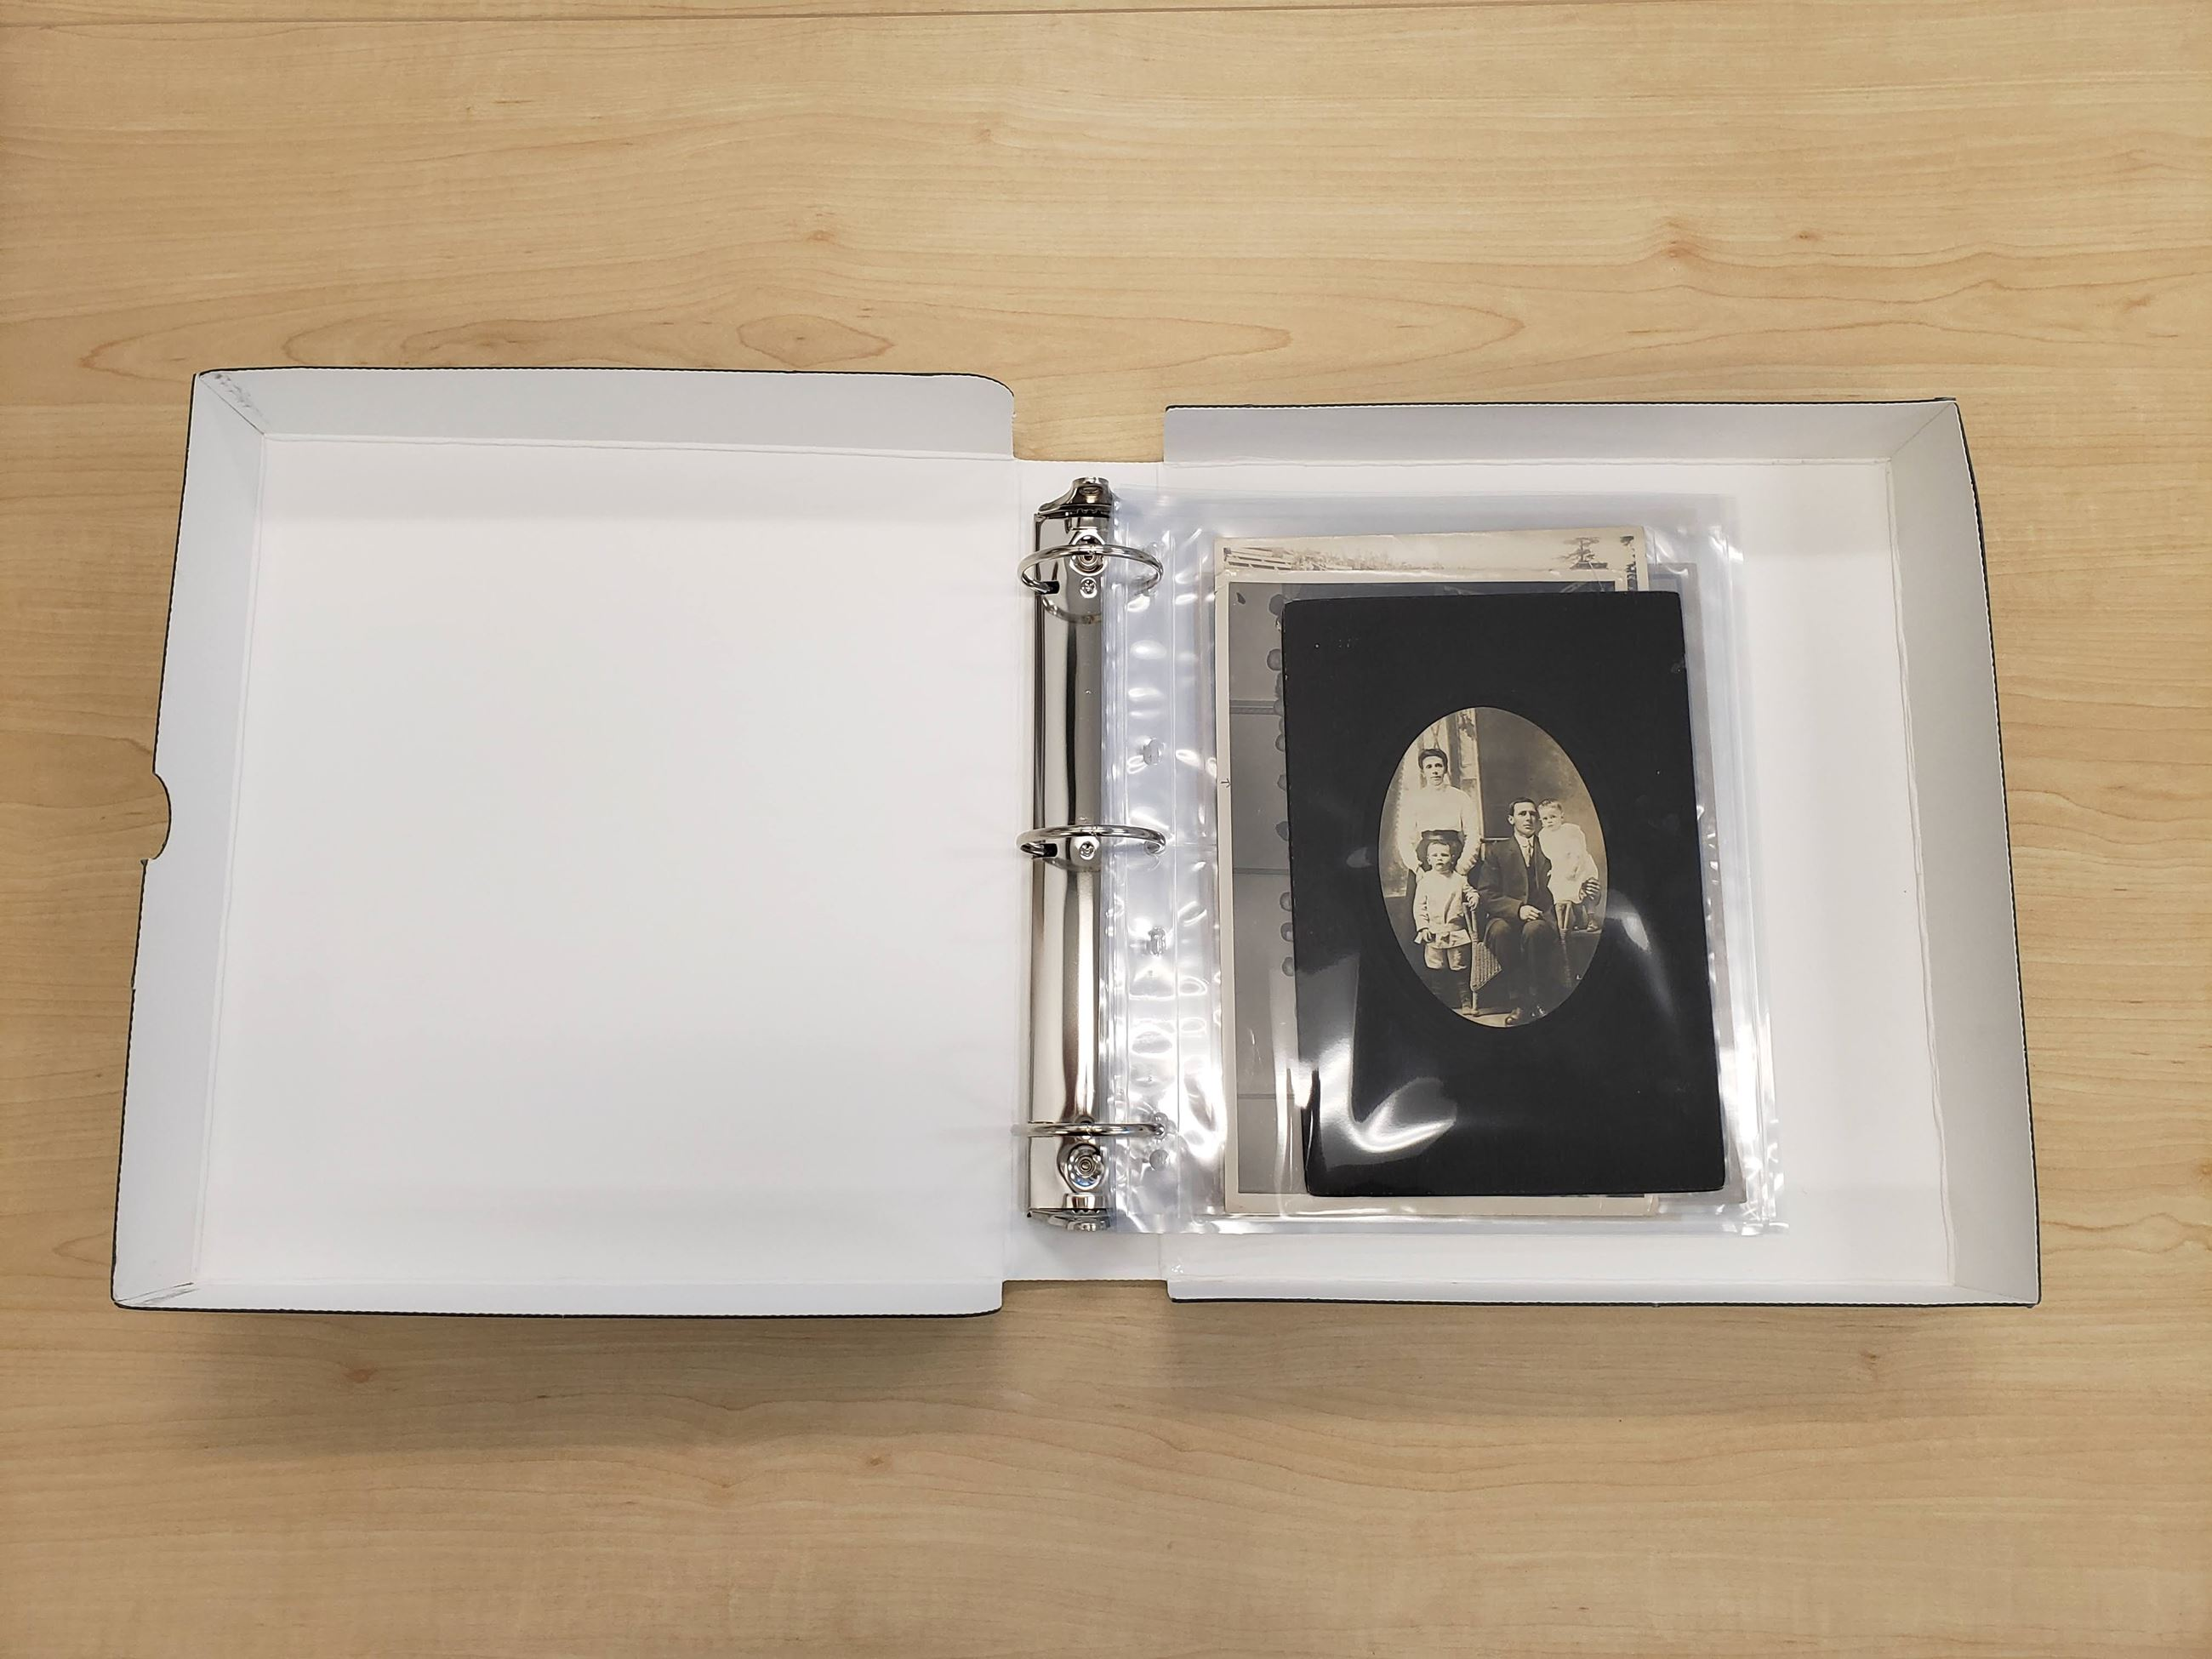 28 - Archival binder with plastic photo sleeves (Harris Family fonds, City of Coquitlam Archives)